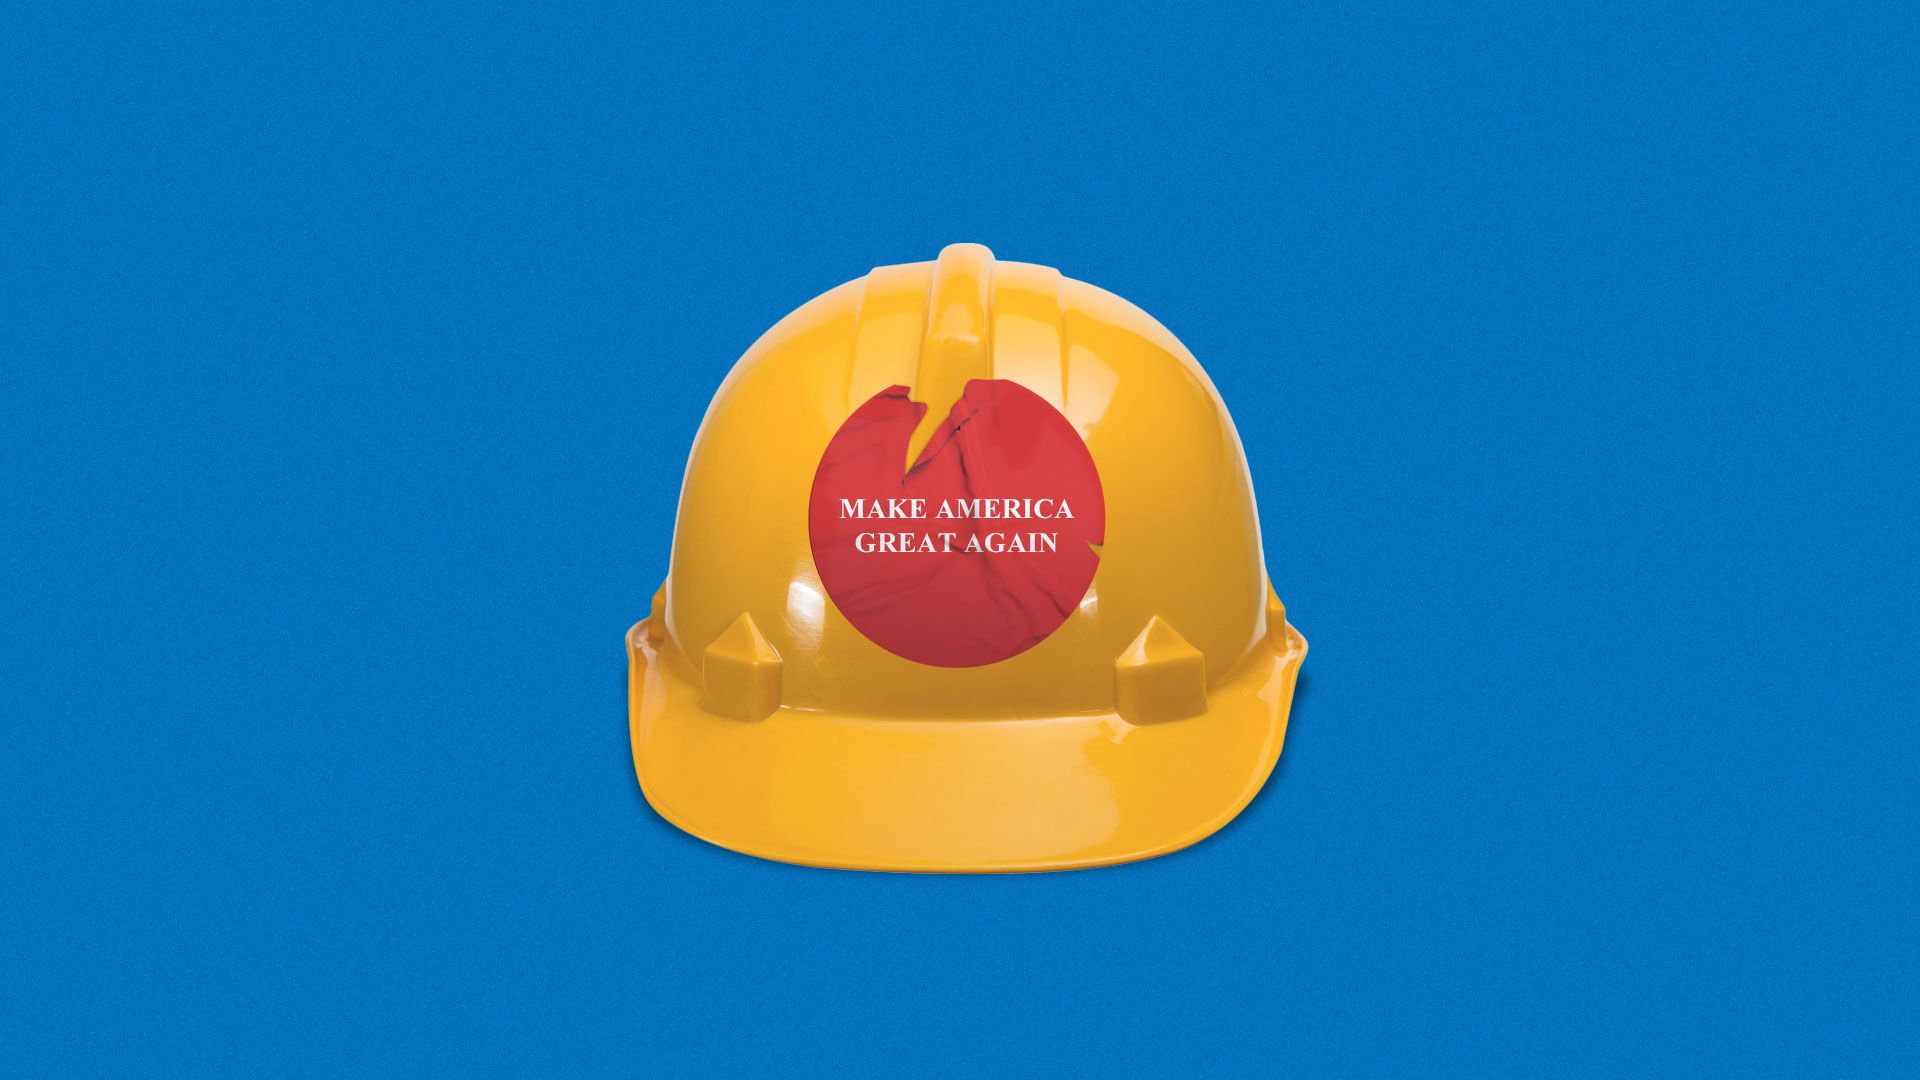 Illustration of a hard hat with an old, peeling Make America Great Again sticker